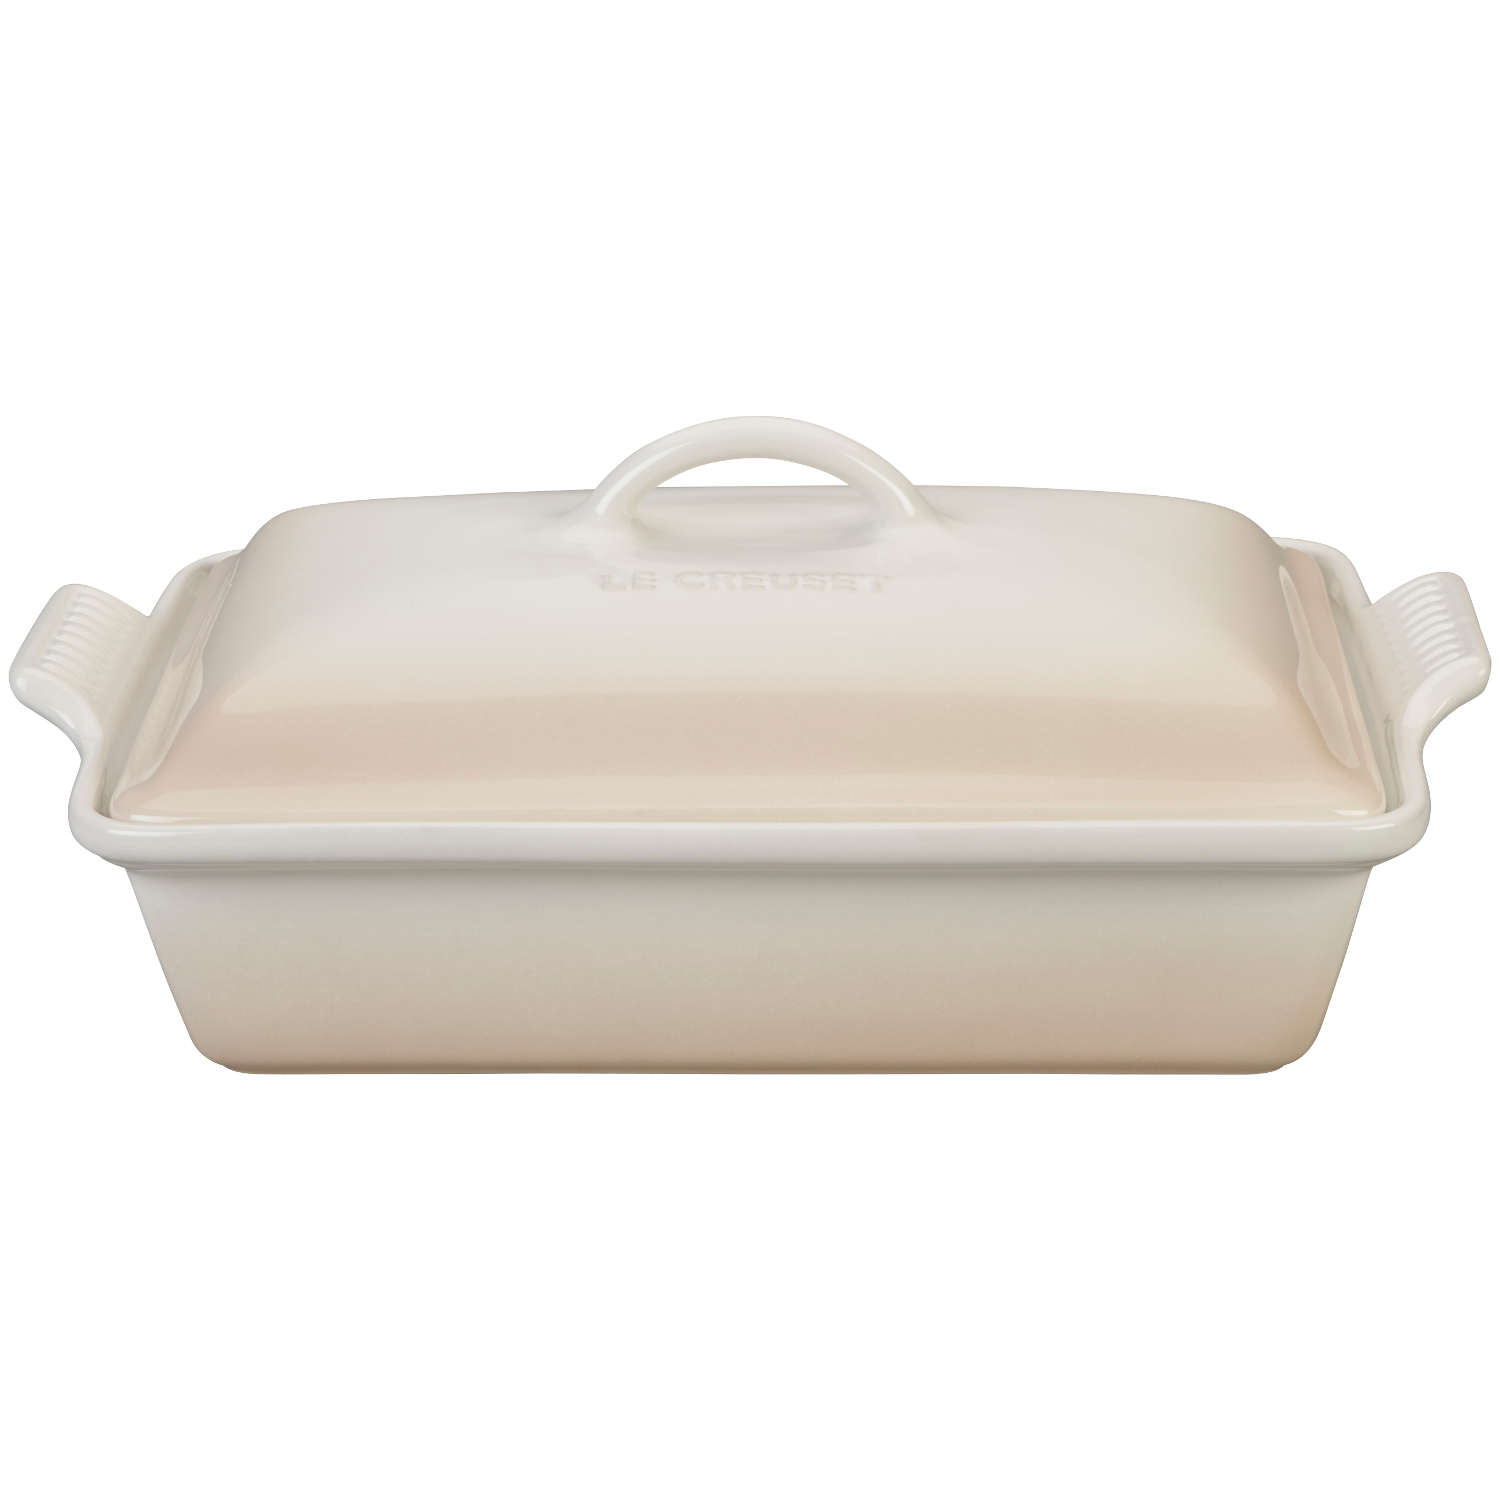 Le Creuset Heritage Meringue Stoneware Covered 4 Quart Rectangular Casserole Dish